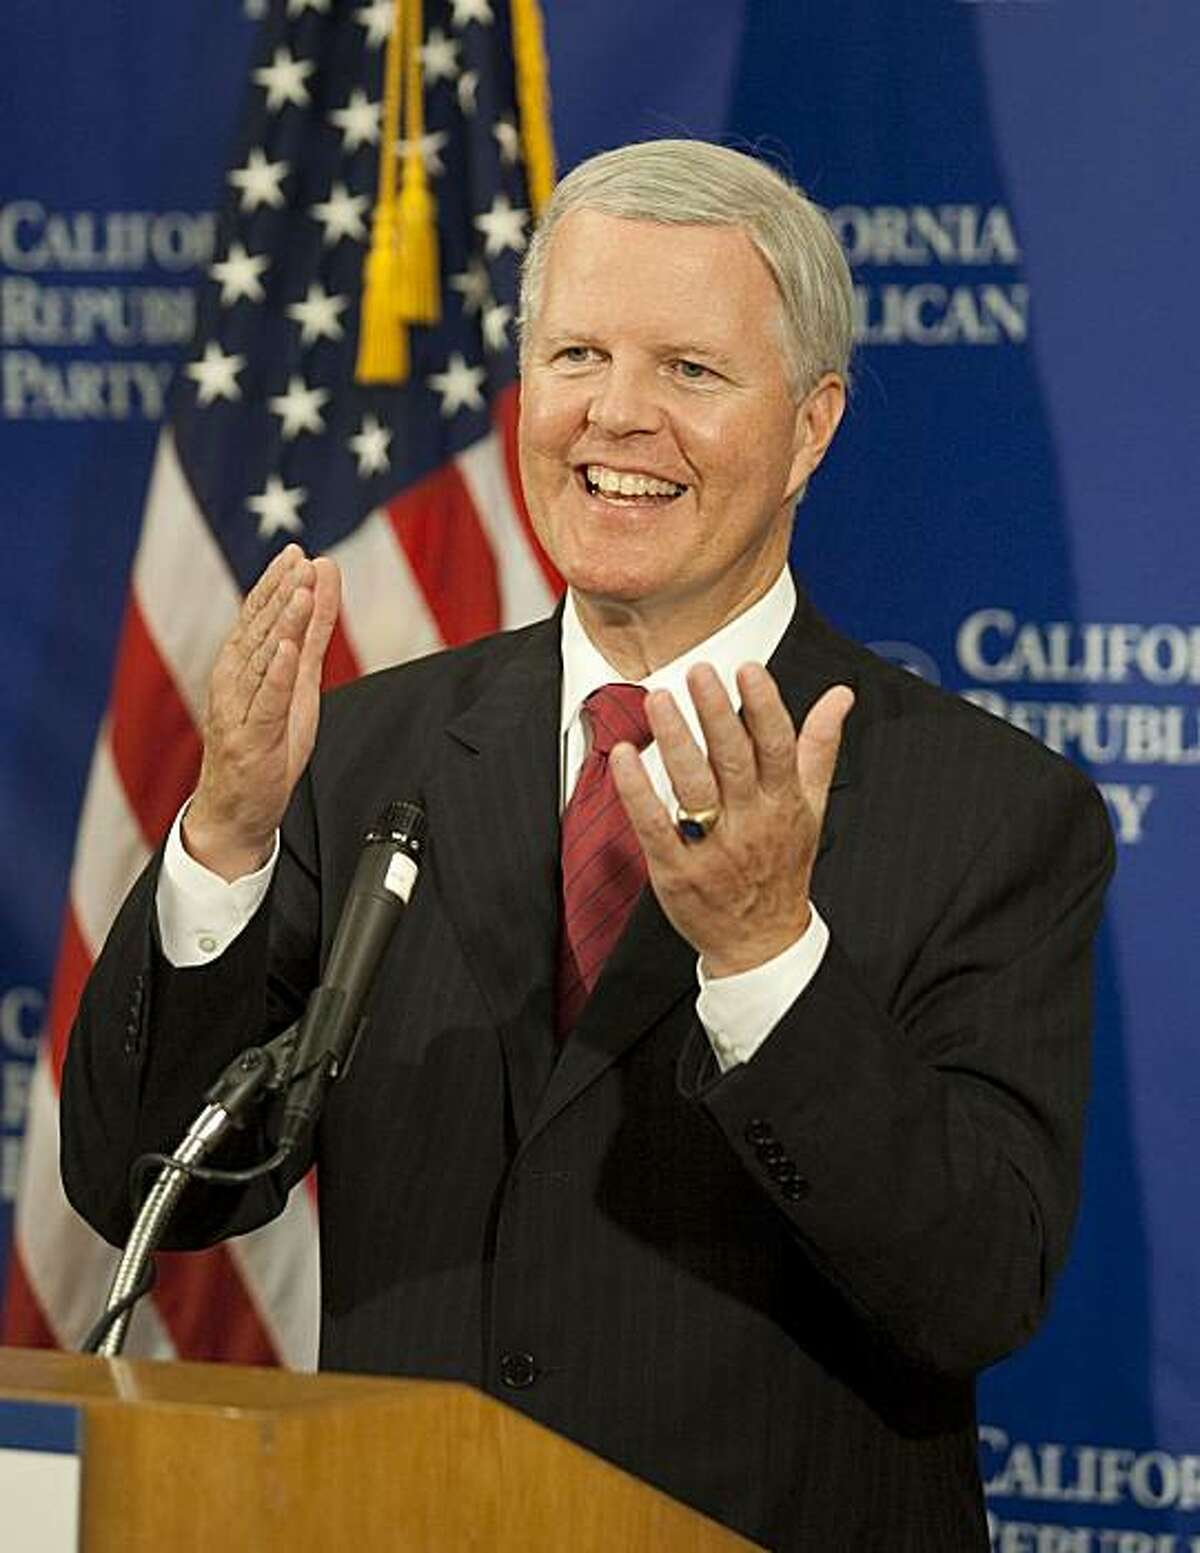 Former congressman Tom Campbell speaks at a news conference during the California Republican Convention in Indian Wells, Calif., on Saturday, Sept. 26, 2009. Campbell is seeking the Republican nomination for Governor of California.(AP Photo/Francis Specker)